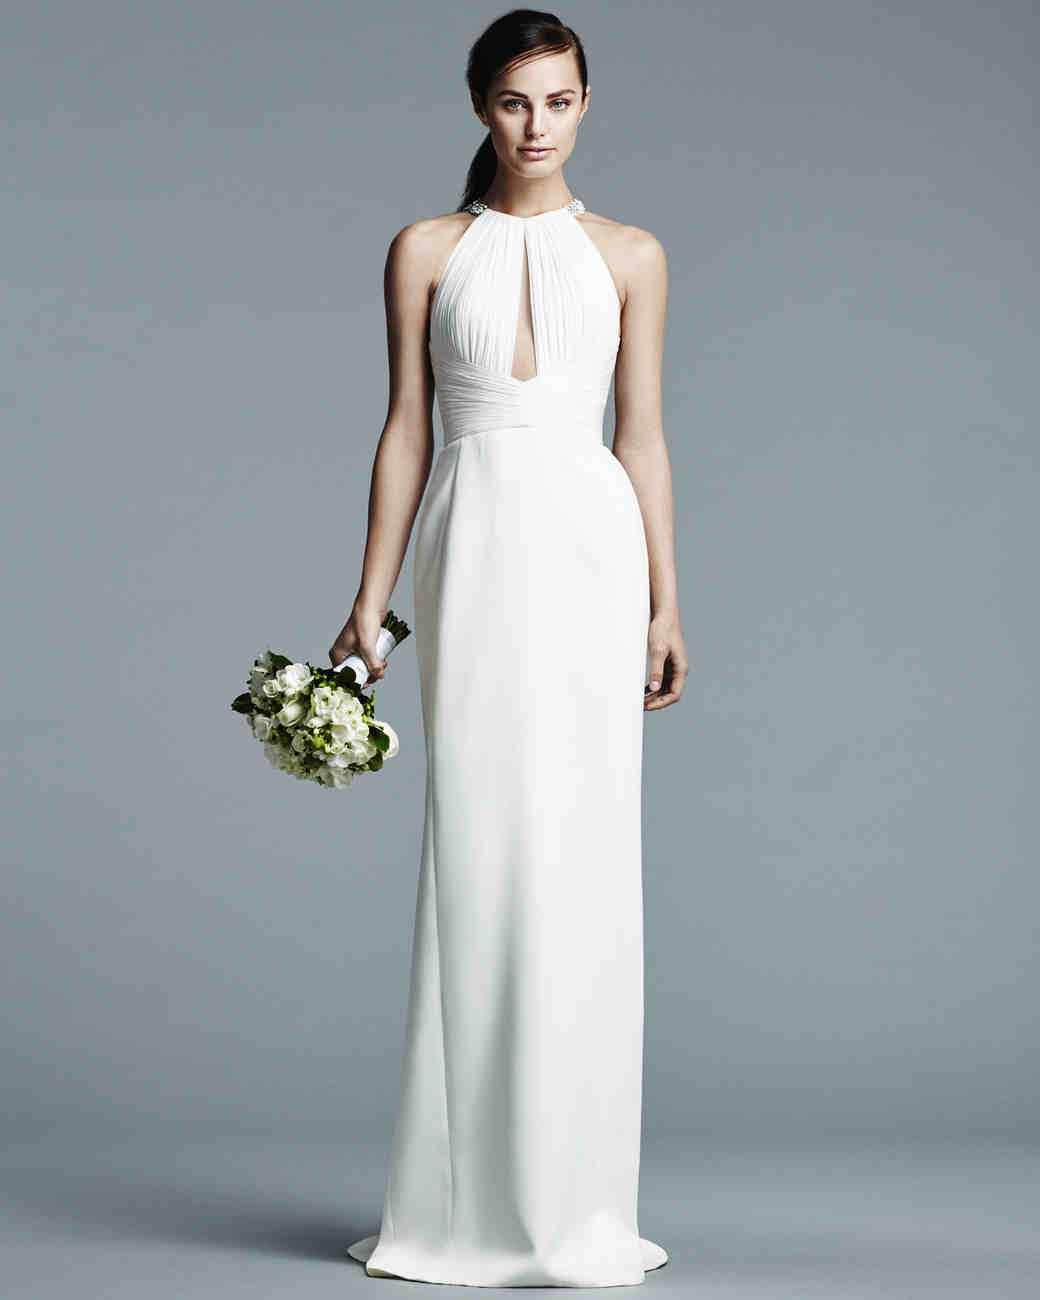 J. Mendel halter-neck wedding dress with hand pleated bodice